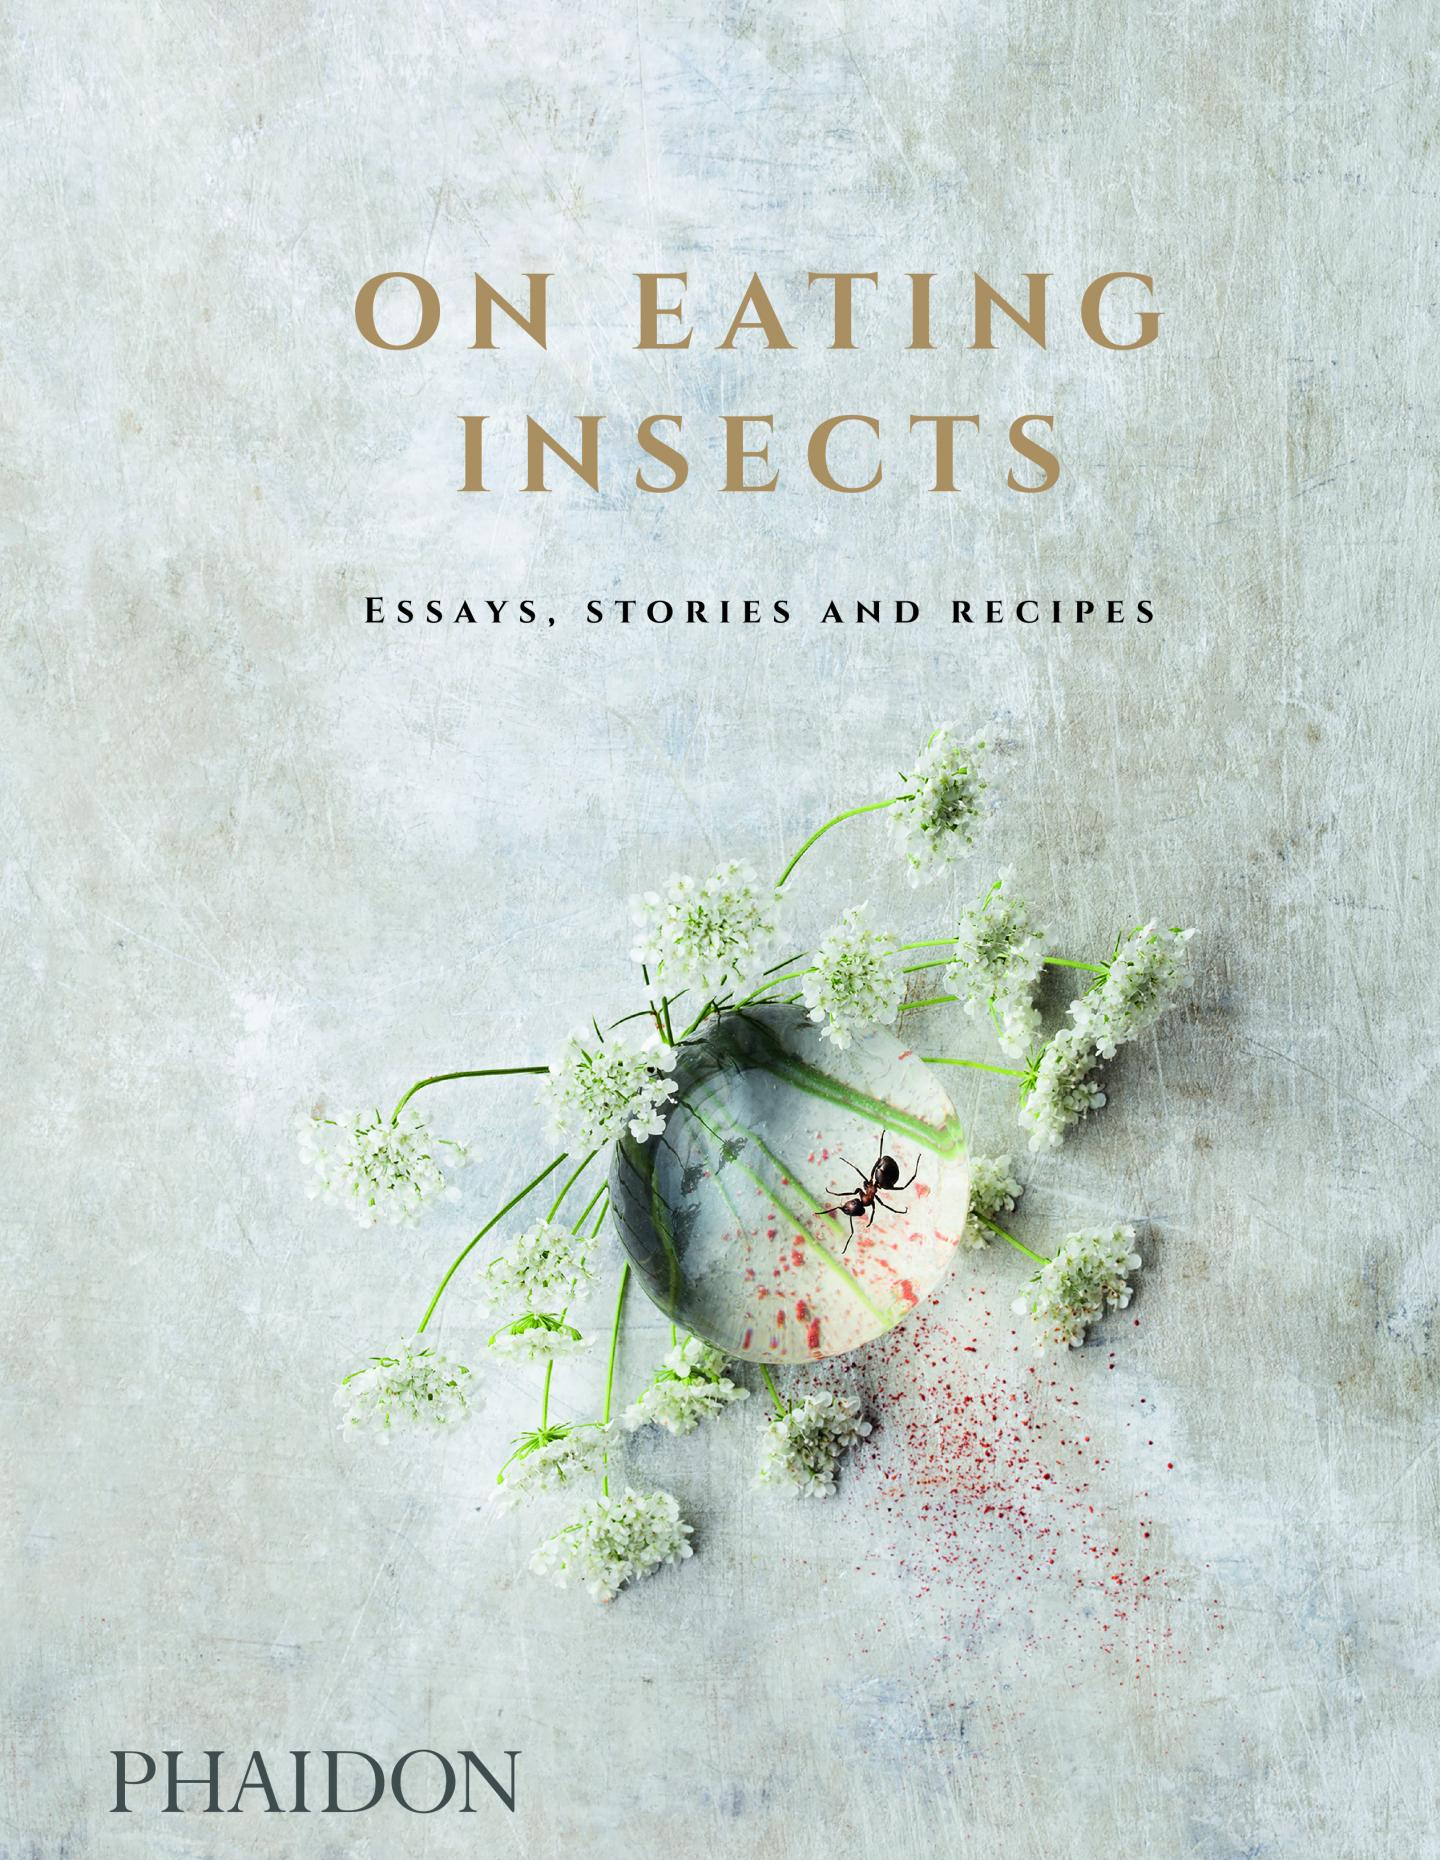 Image of the Book: On Eating Insects - Essays, Stories and Recipes